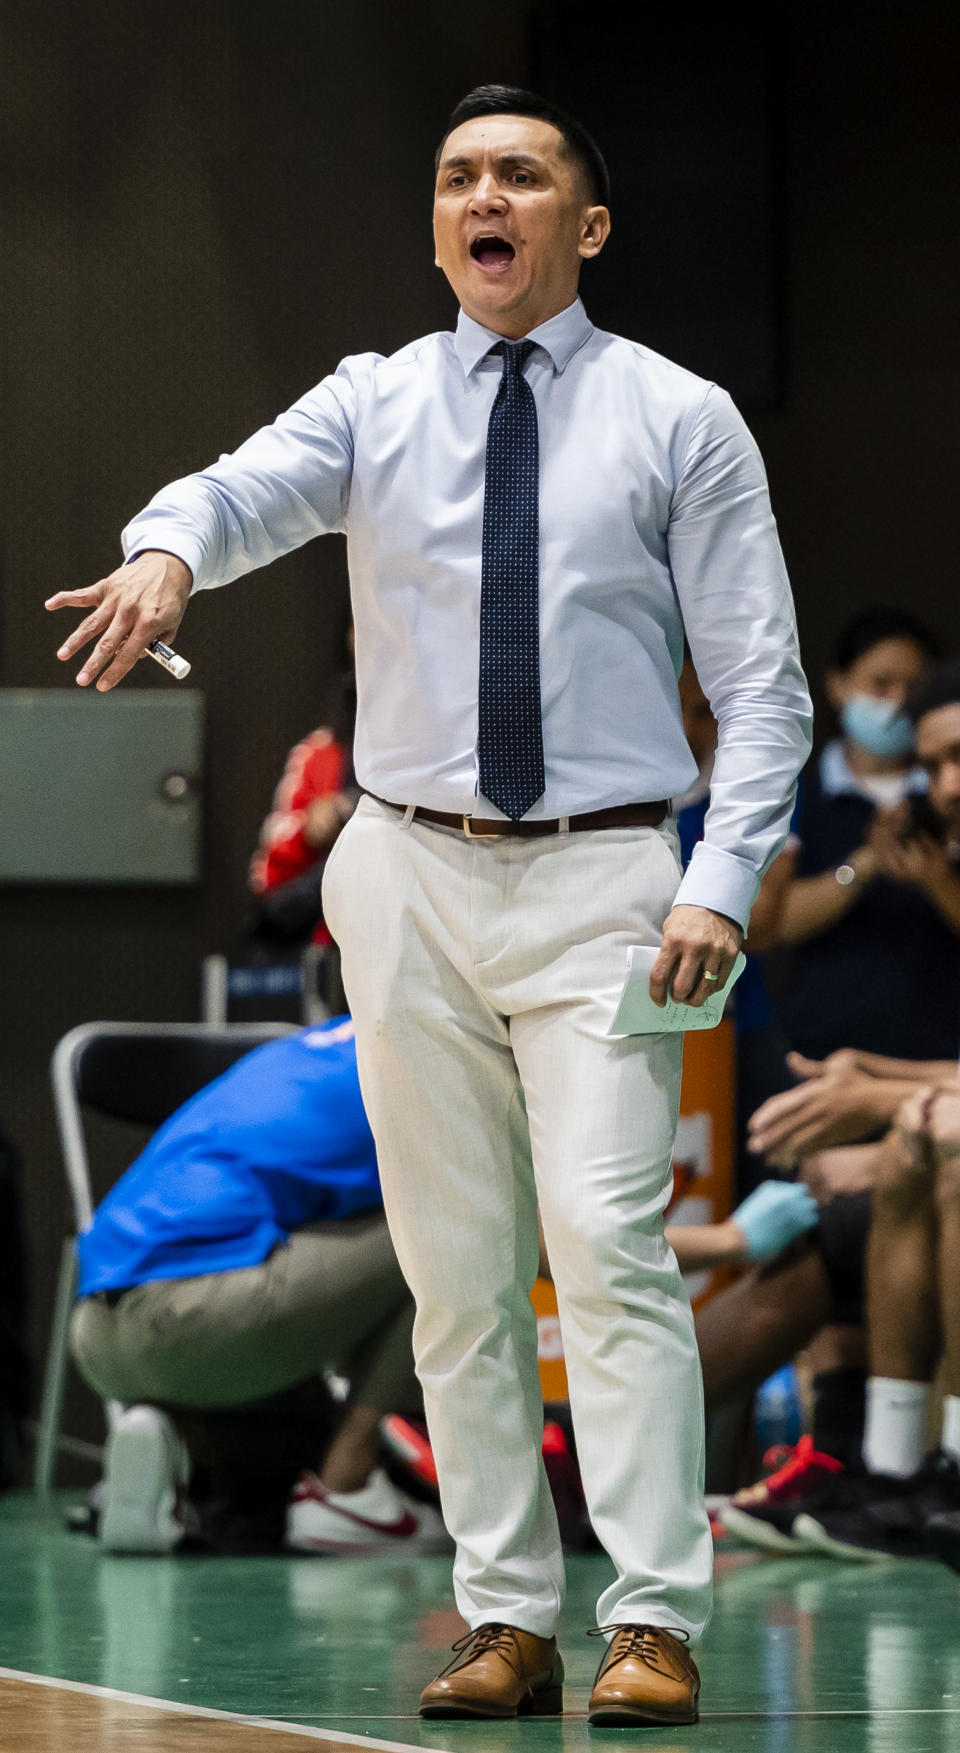 HONG KONG, CHINA - JANUARY 23: Team coach Jimmy Alapag of San Miguel Alab Pilipinas gestures during the ASEAN Basketball League game between Hong Kong Eastern and San Miguel Alab Pilipinas at Southorn Stadium on January 23, 2020 in Hong Kong. (Photo by Yu Chun Christopher Wong/Eurasia Sport Images/Getty Images)